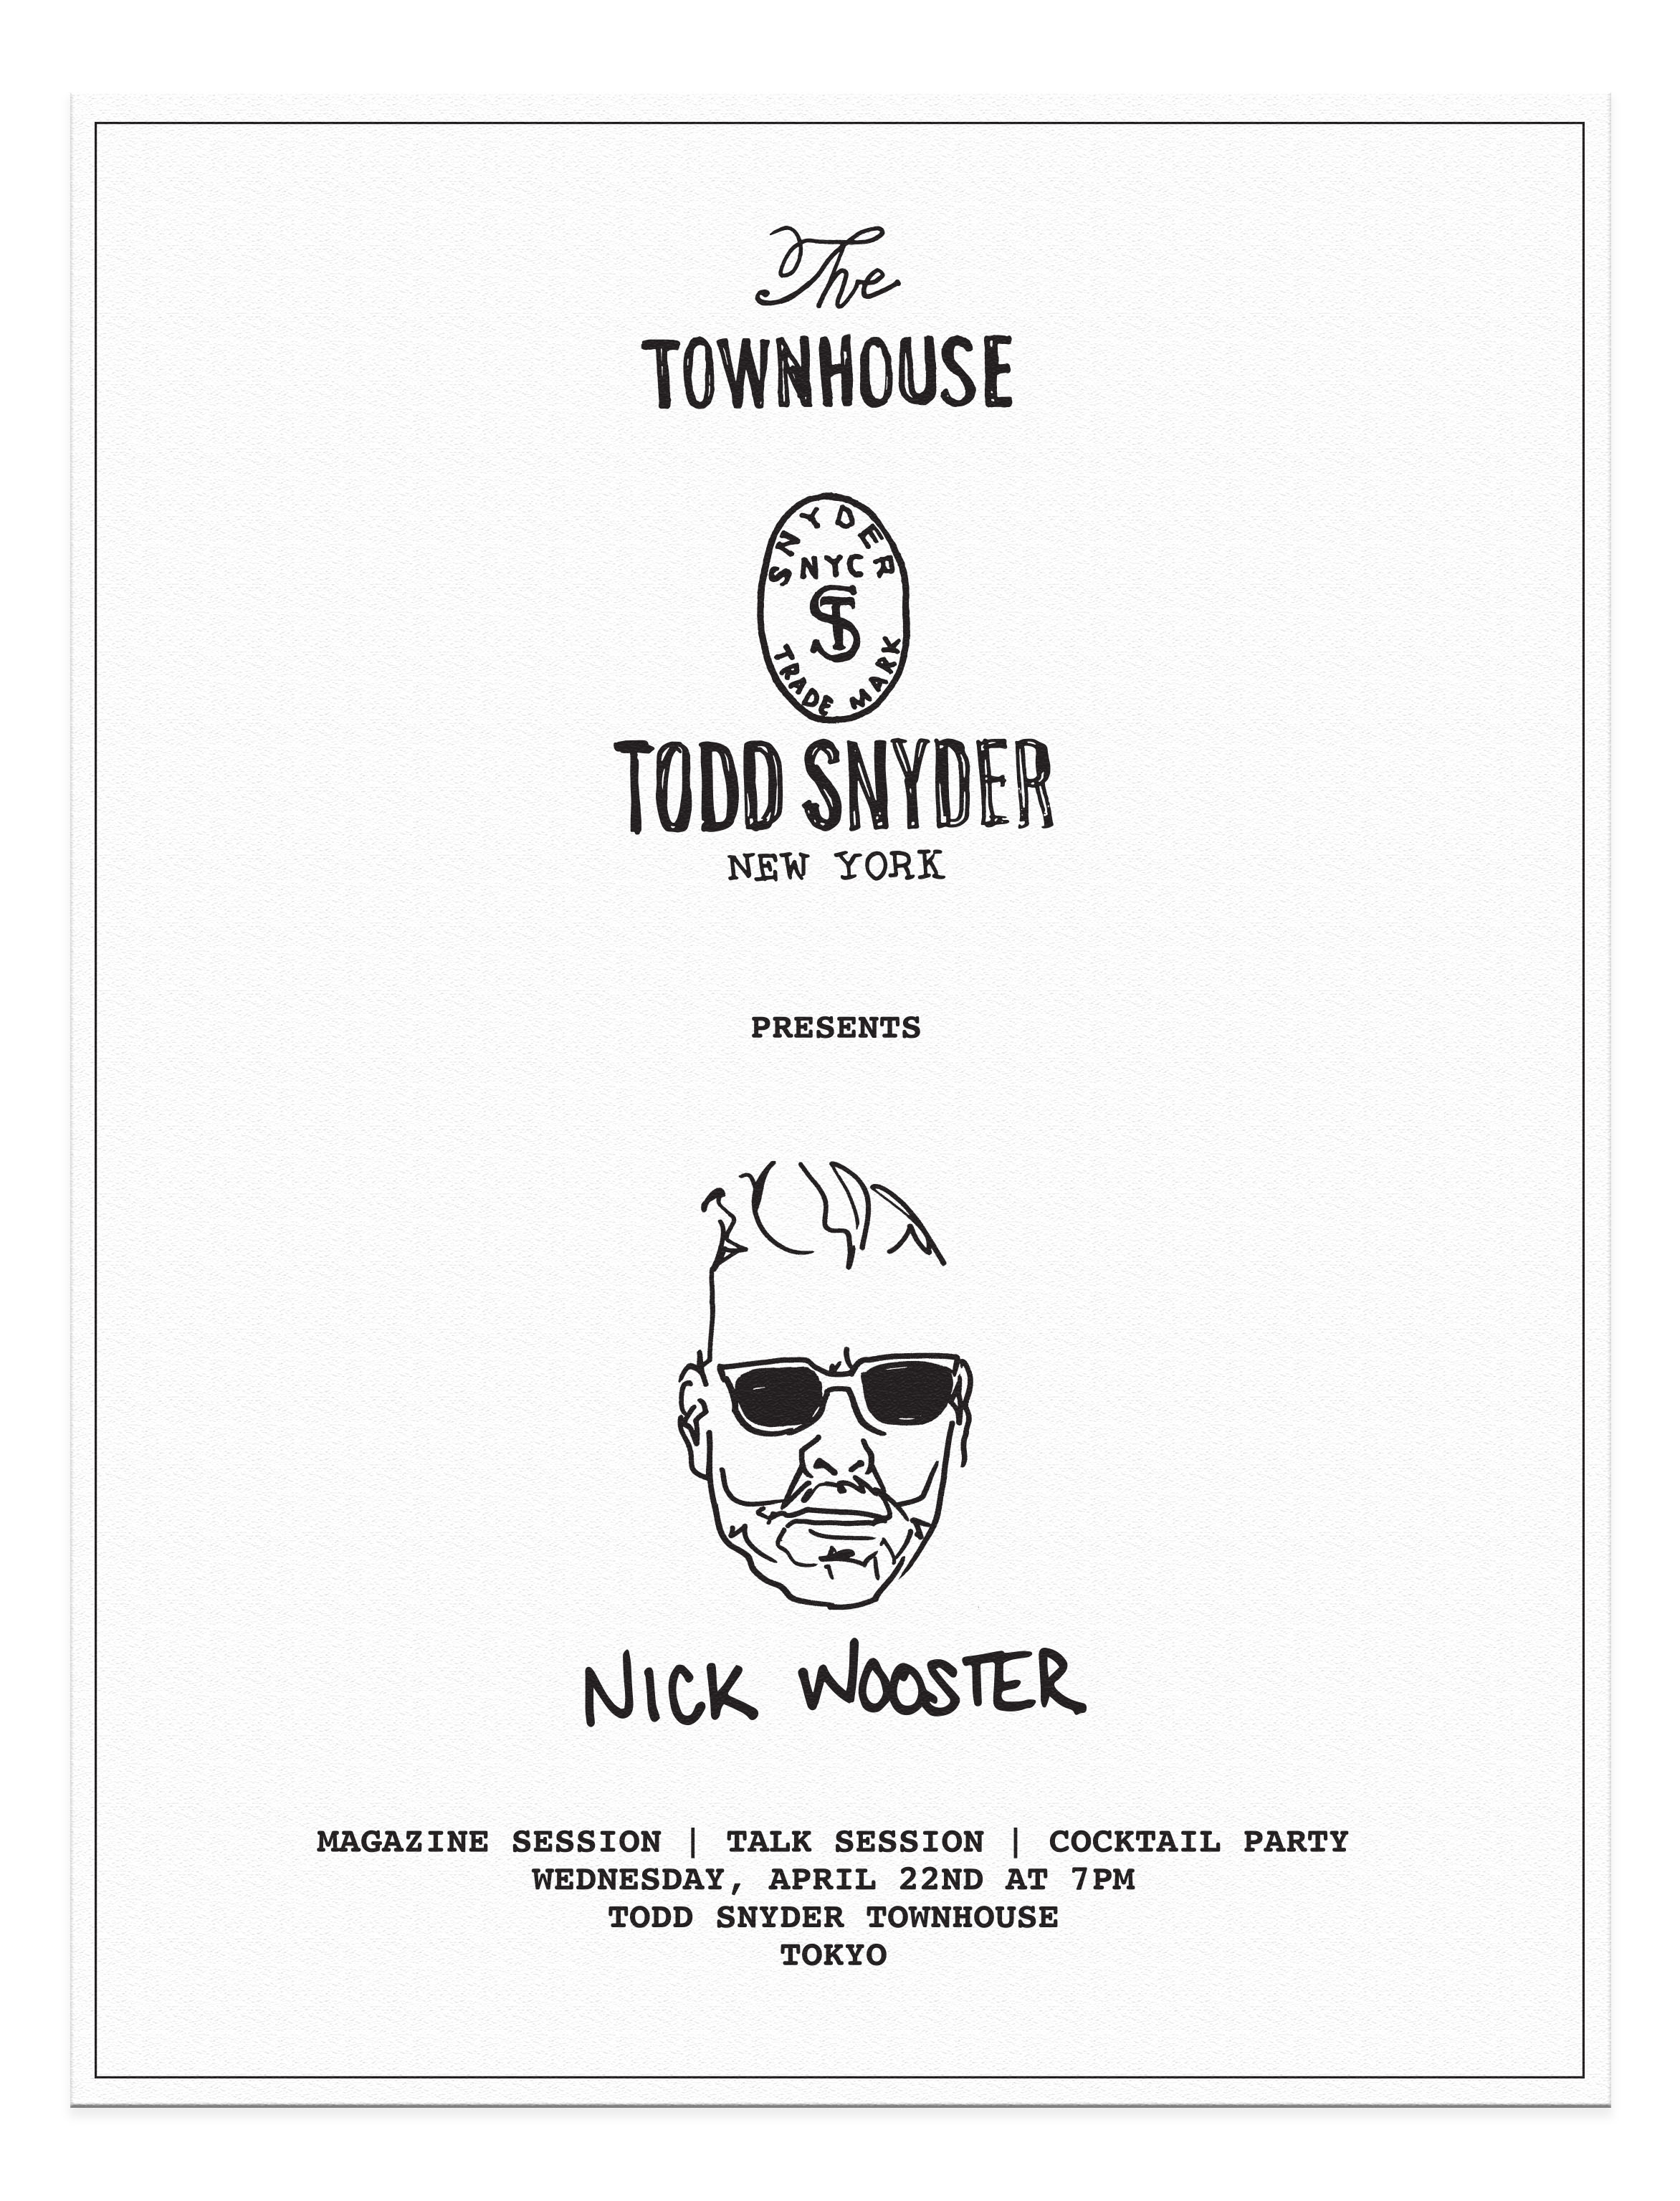 Drawing Graphic Design   Todd Snyder x Nick Wooster